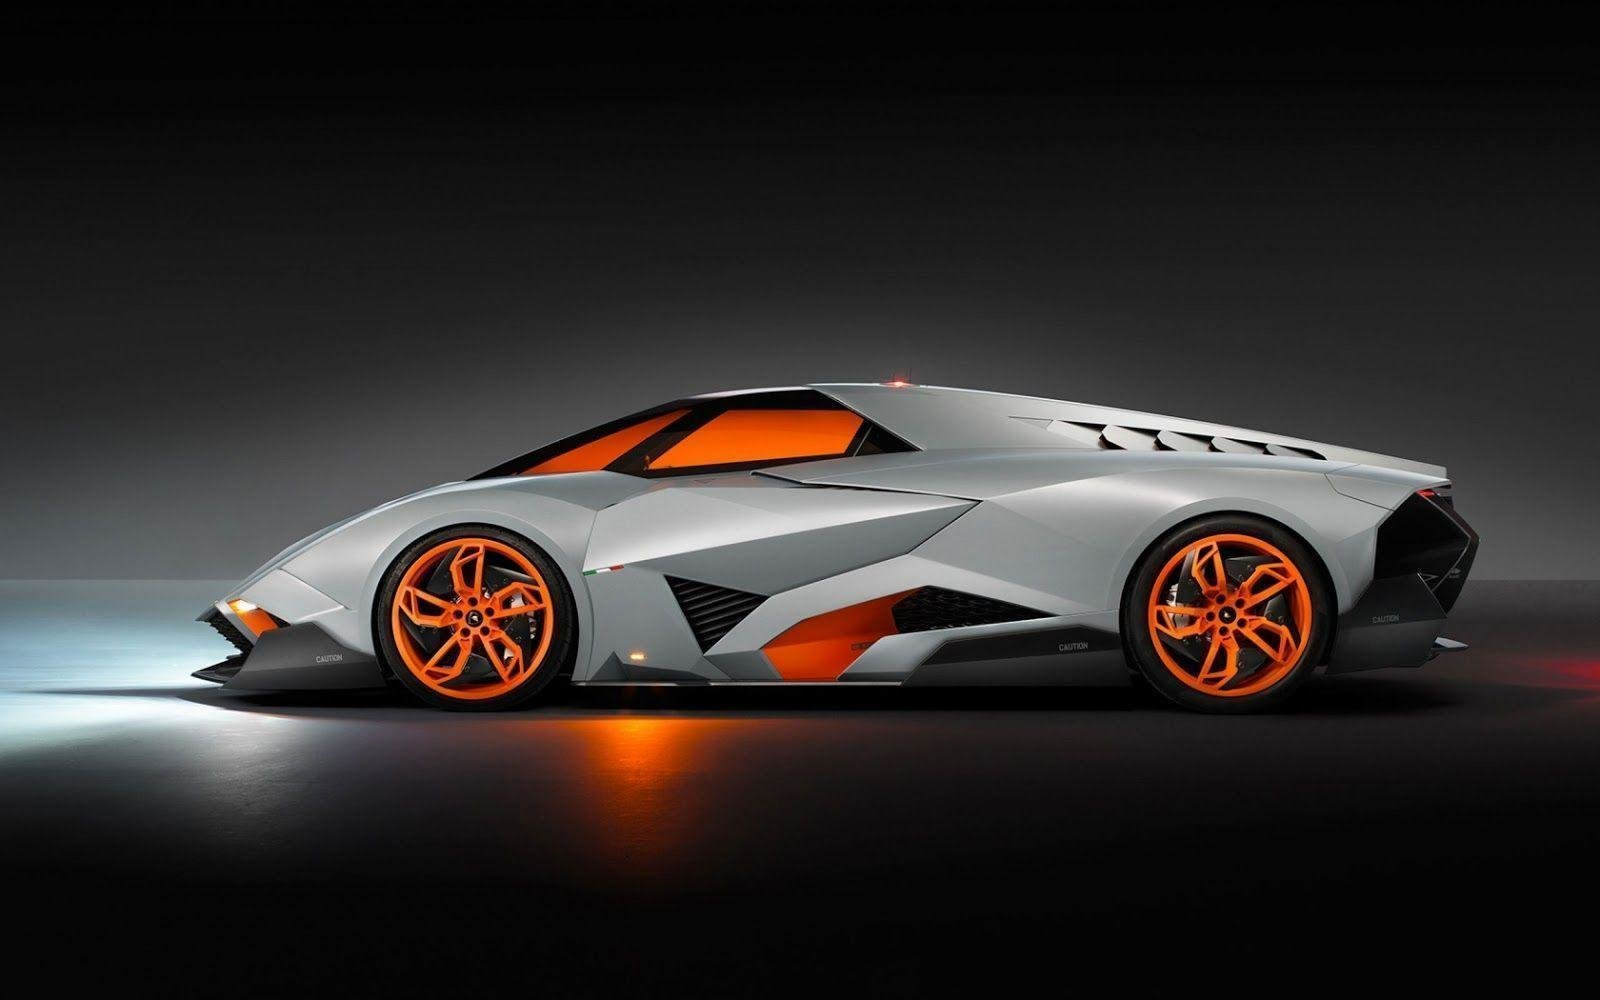 New Lamborghini Cars Wallpapers Wallpaper Cave On This Month